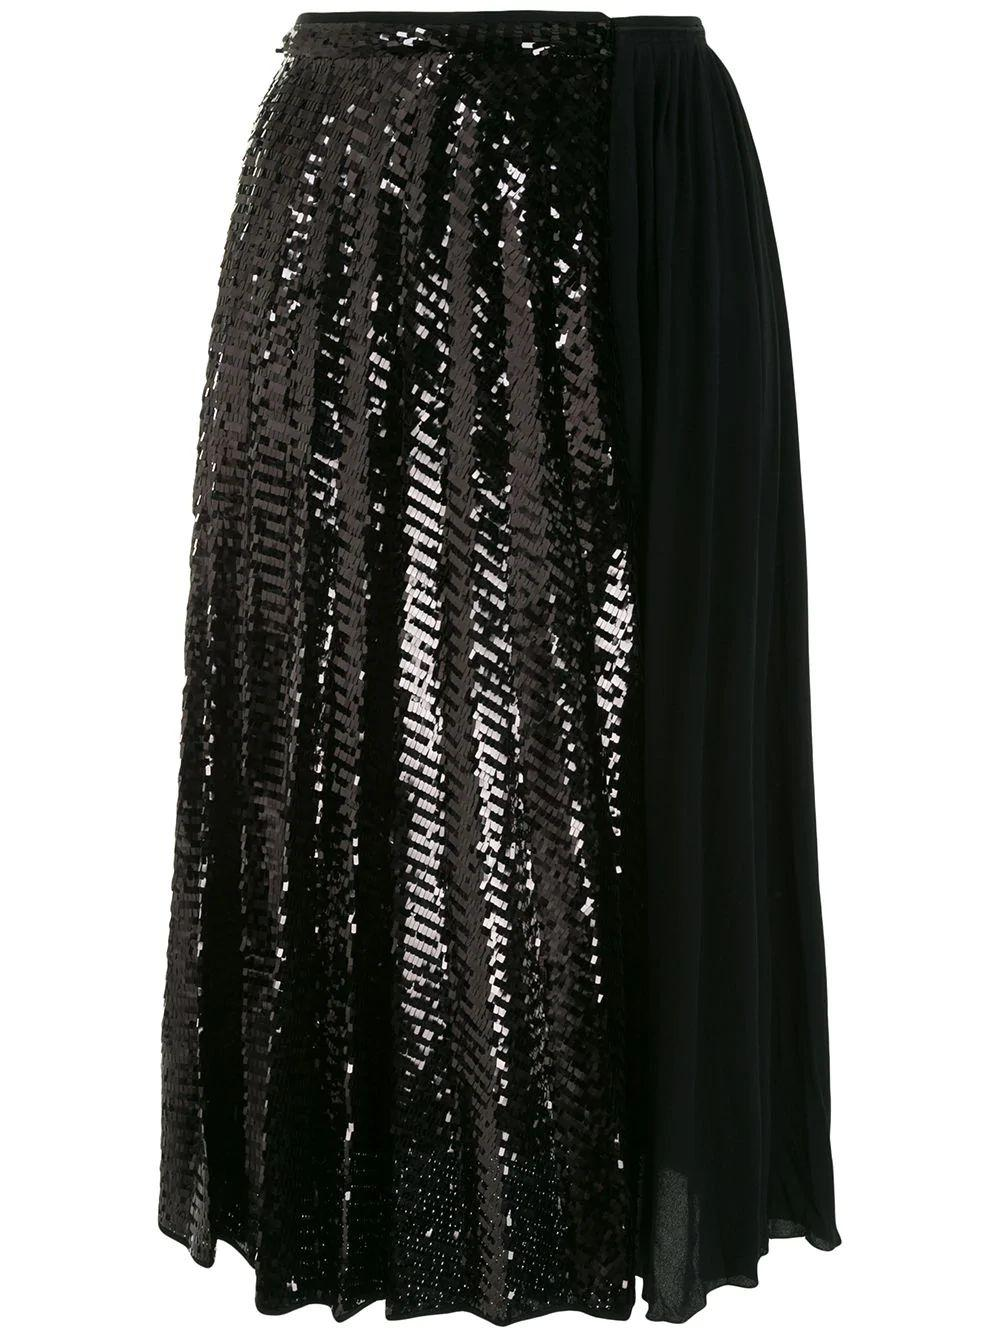 Black Pleated Midi Skirt Item # C071-4890-9000